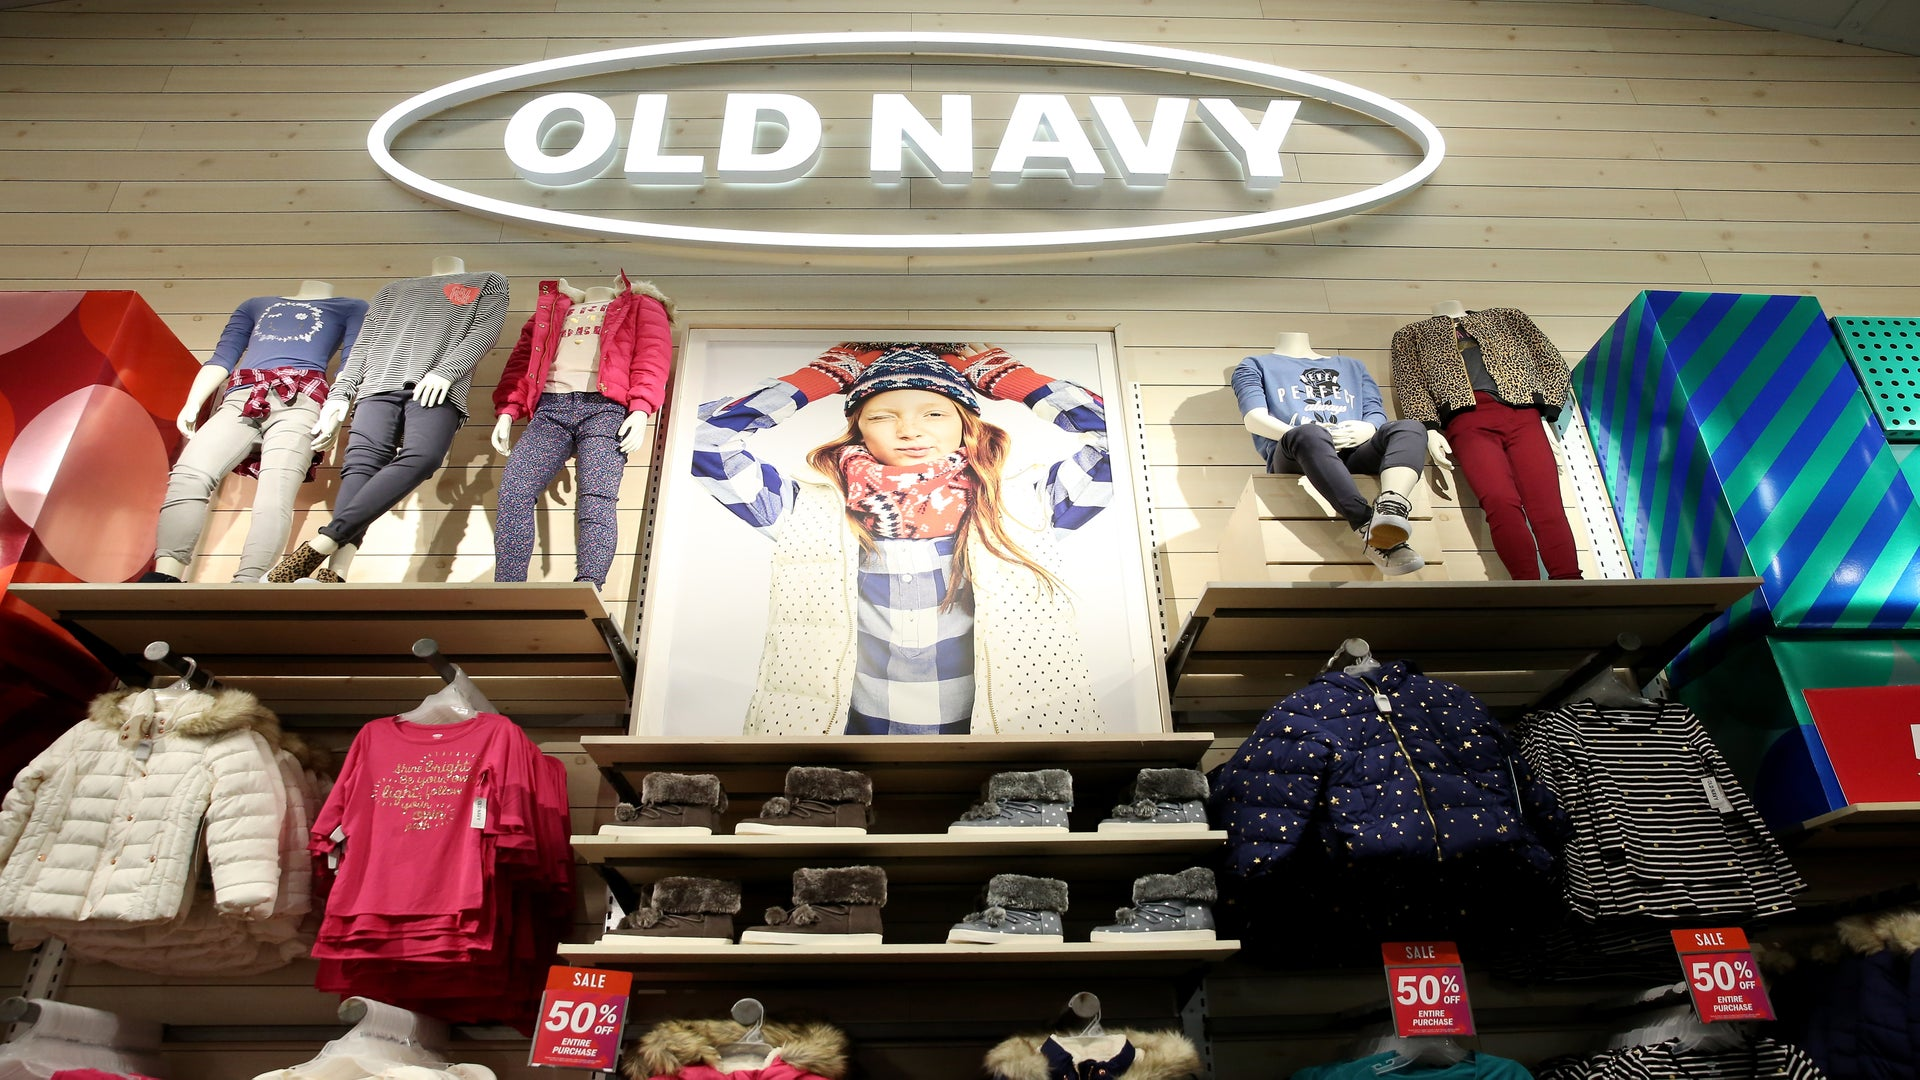 Old Navy Fires Three Employees After Customer Complains Of Racial Profiling